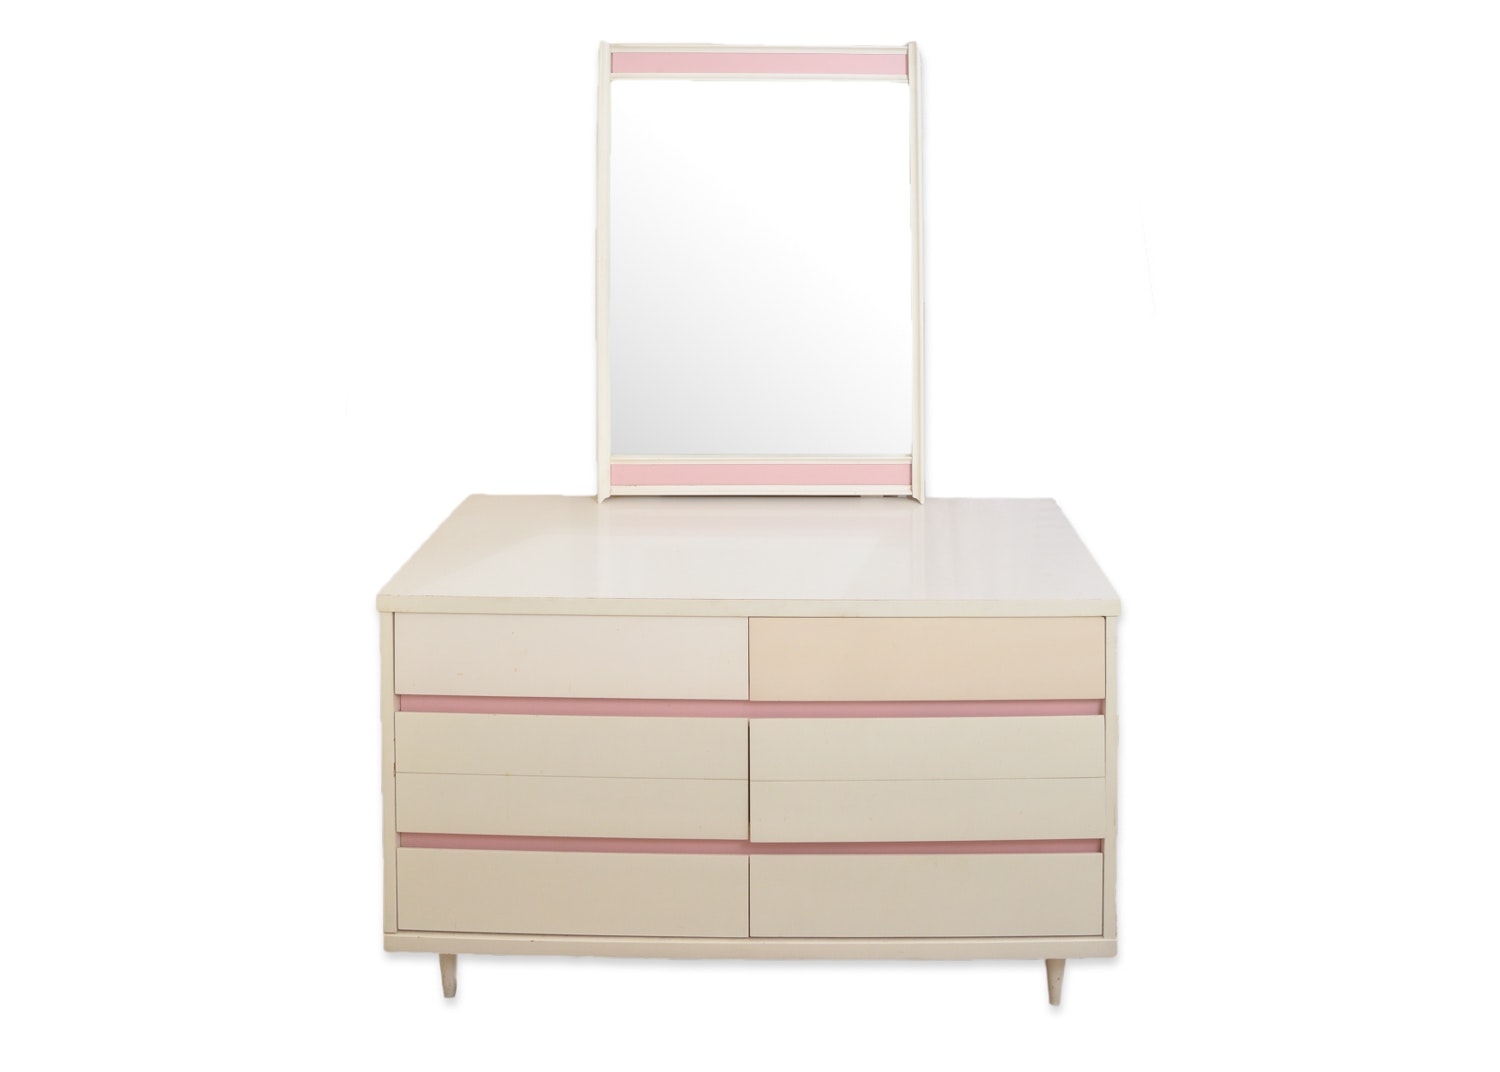 Mid Century Modern Dresser with Mirror in Cream and Pink Finish